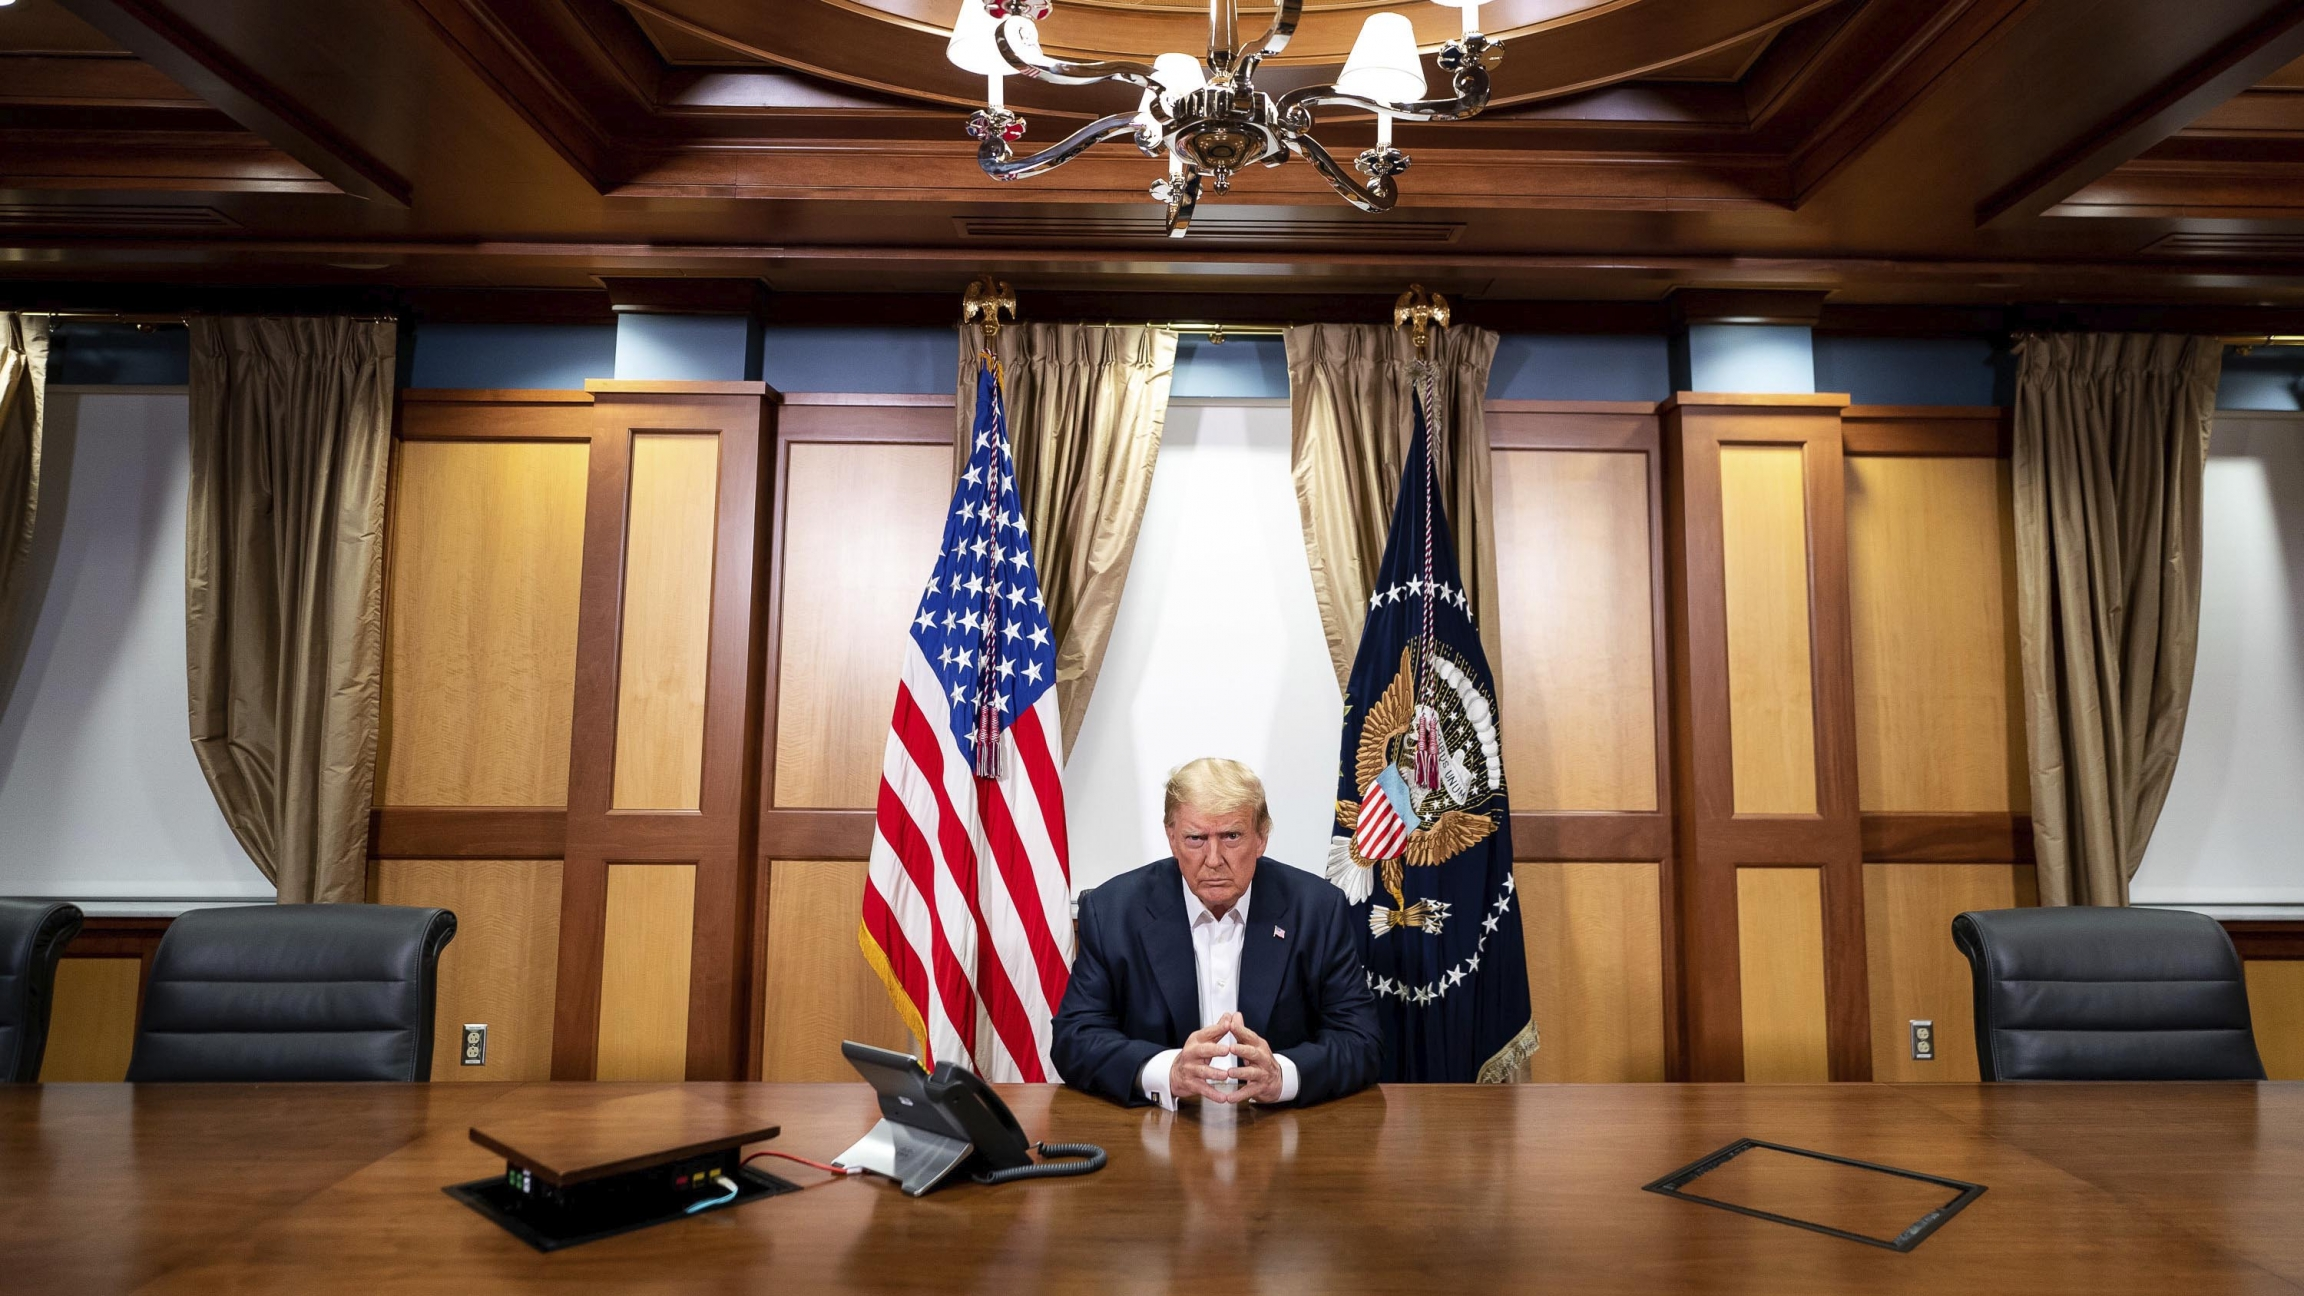 President Donald Trump listens during a phone call Oct. 4, 2020, in his conference room at Walter Reed National Military Medical Center in Bethesda, Maryland.